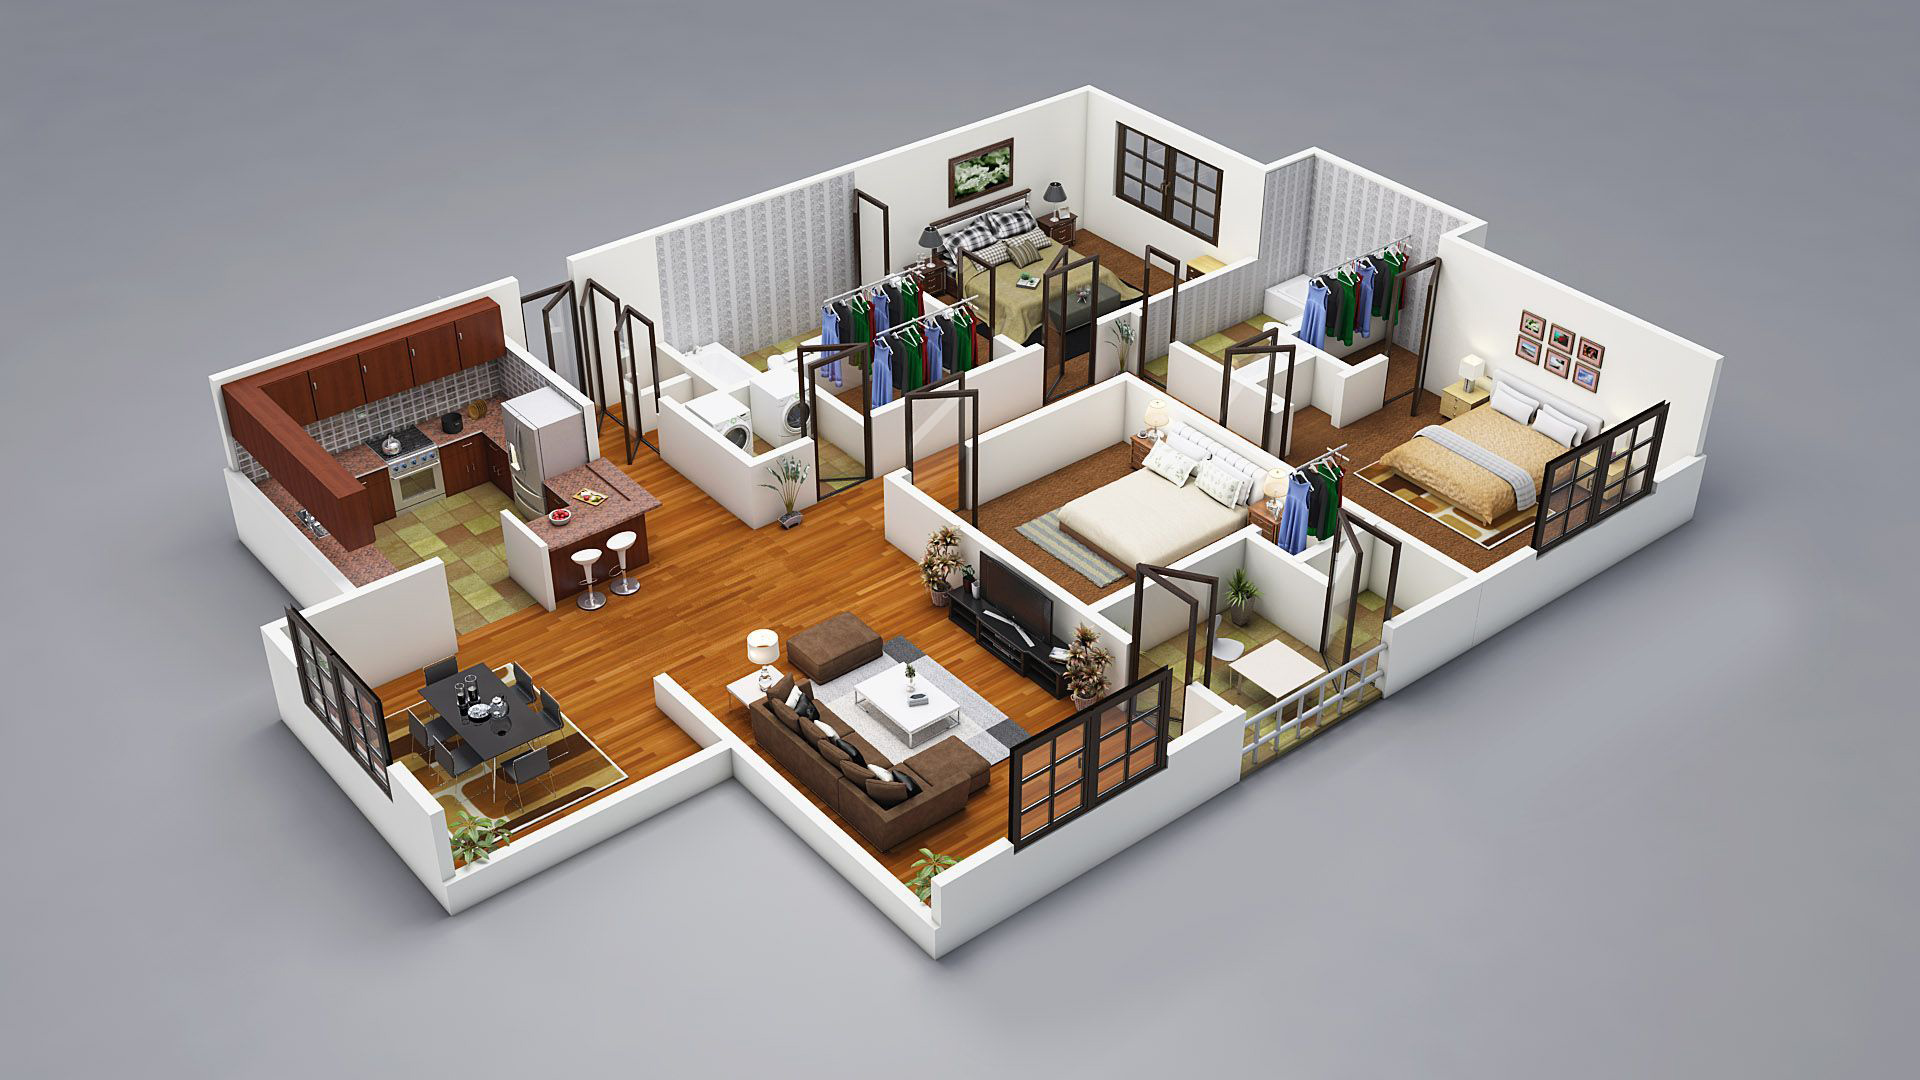 Why 3D Floor Plans Are Better Than Standard Floor Plans